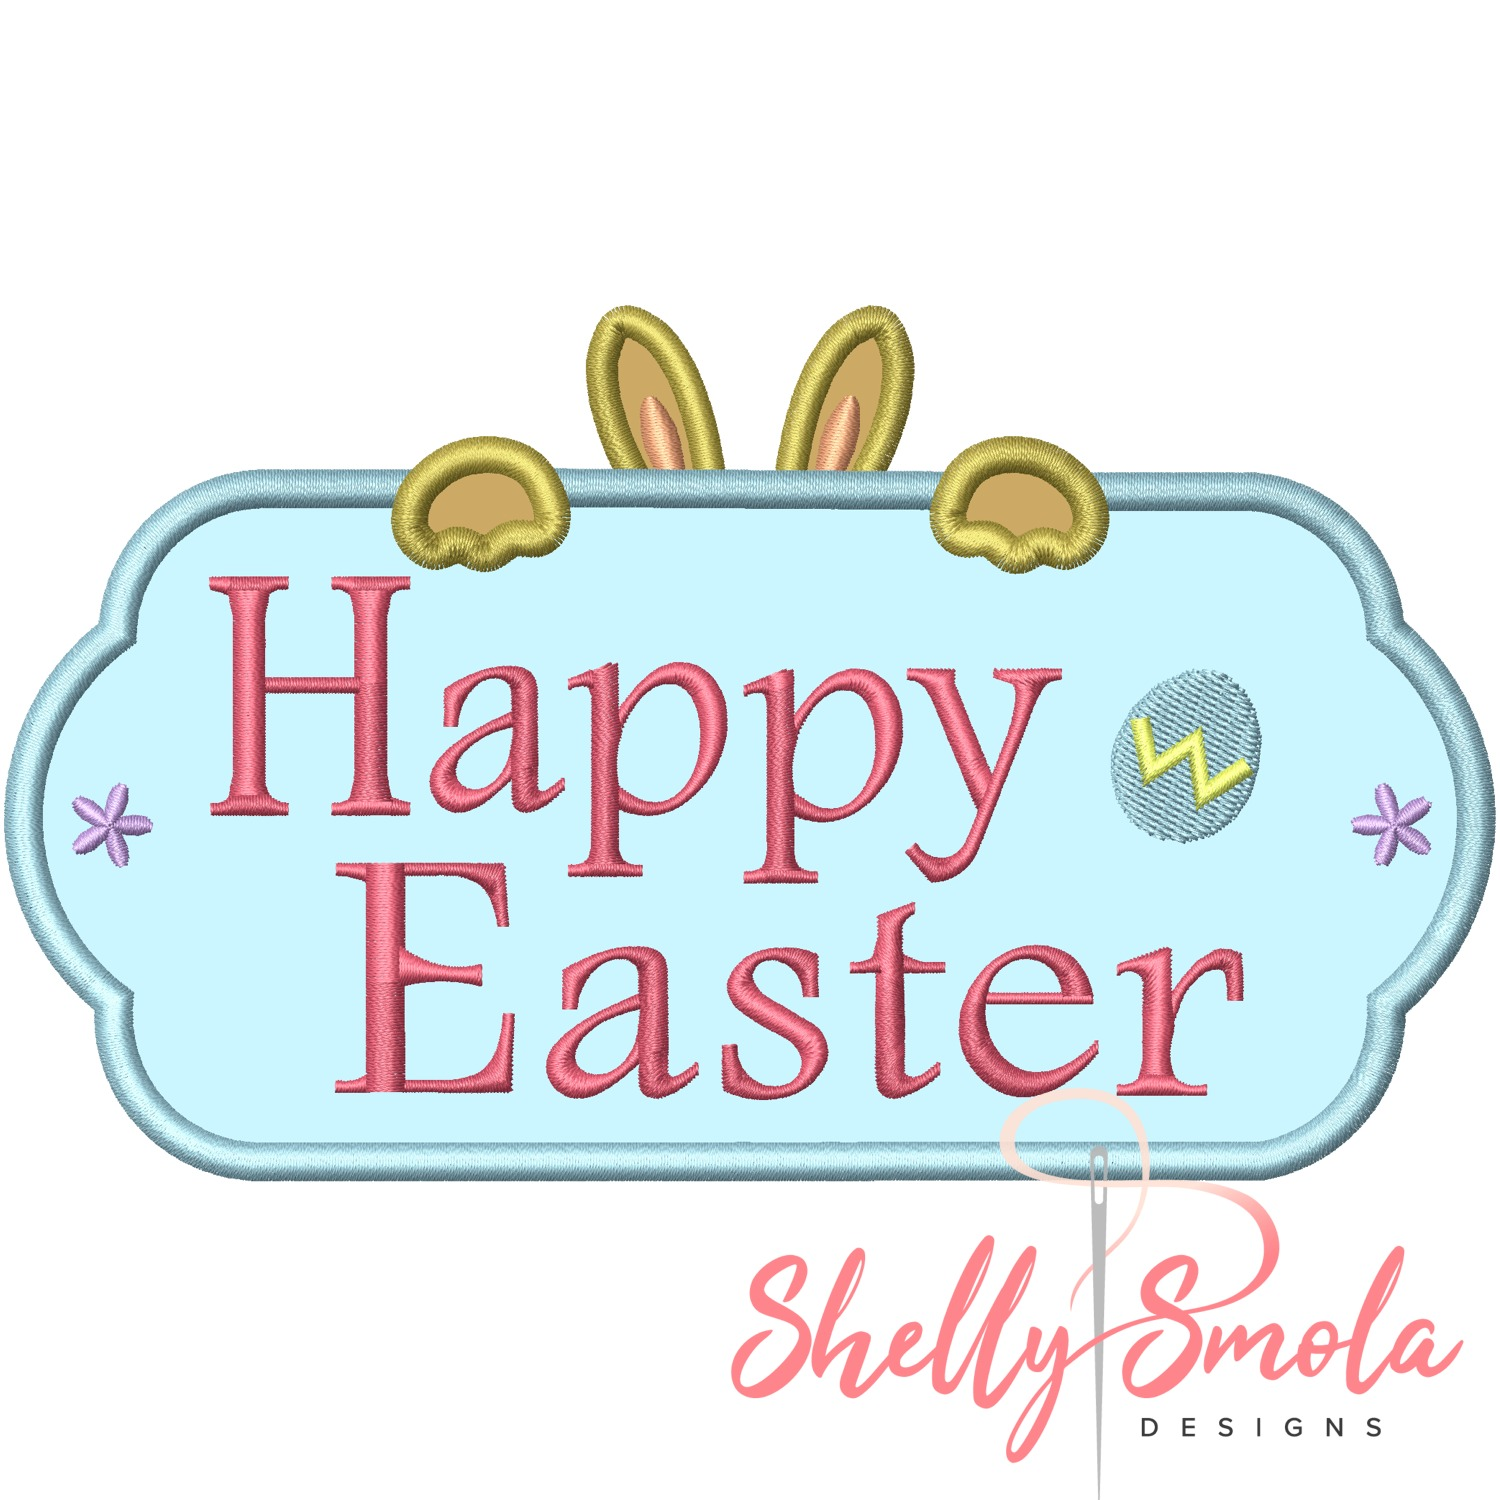 Happy Easter by Shelly Smola